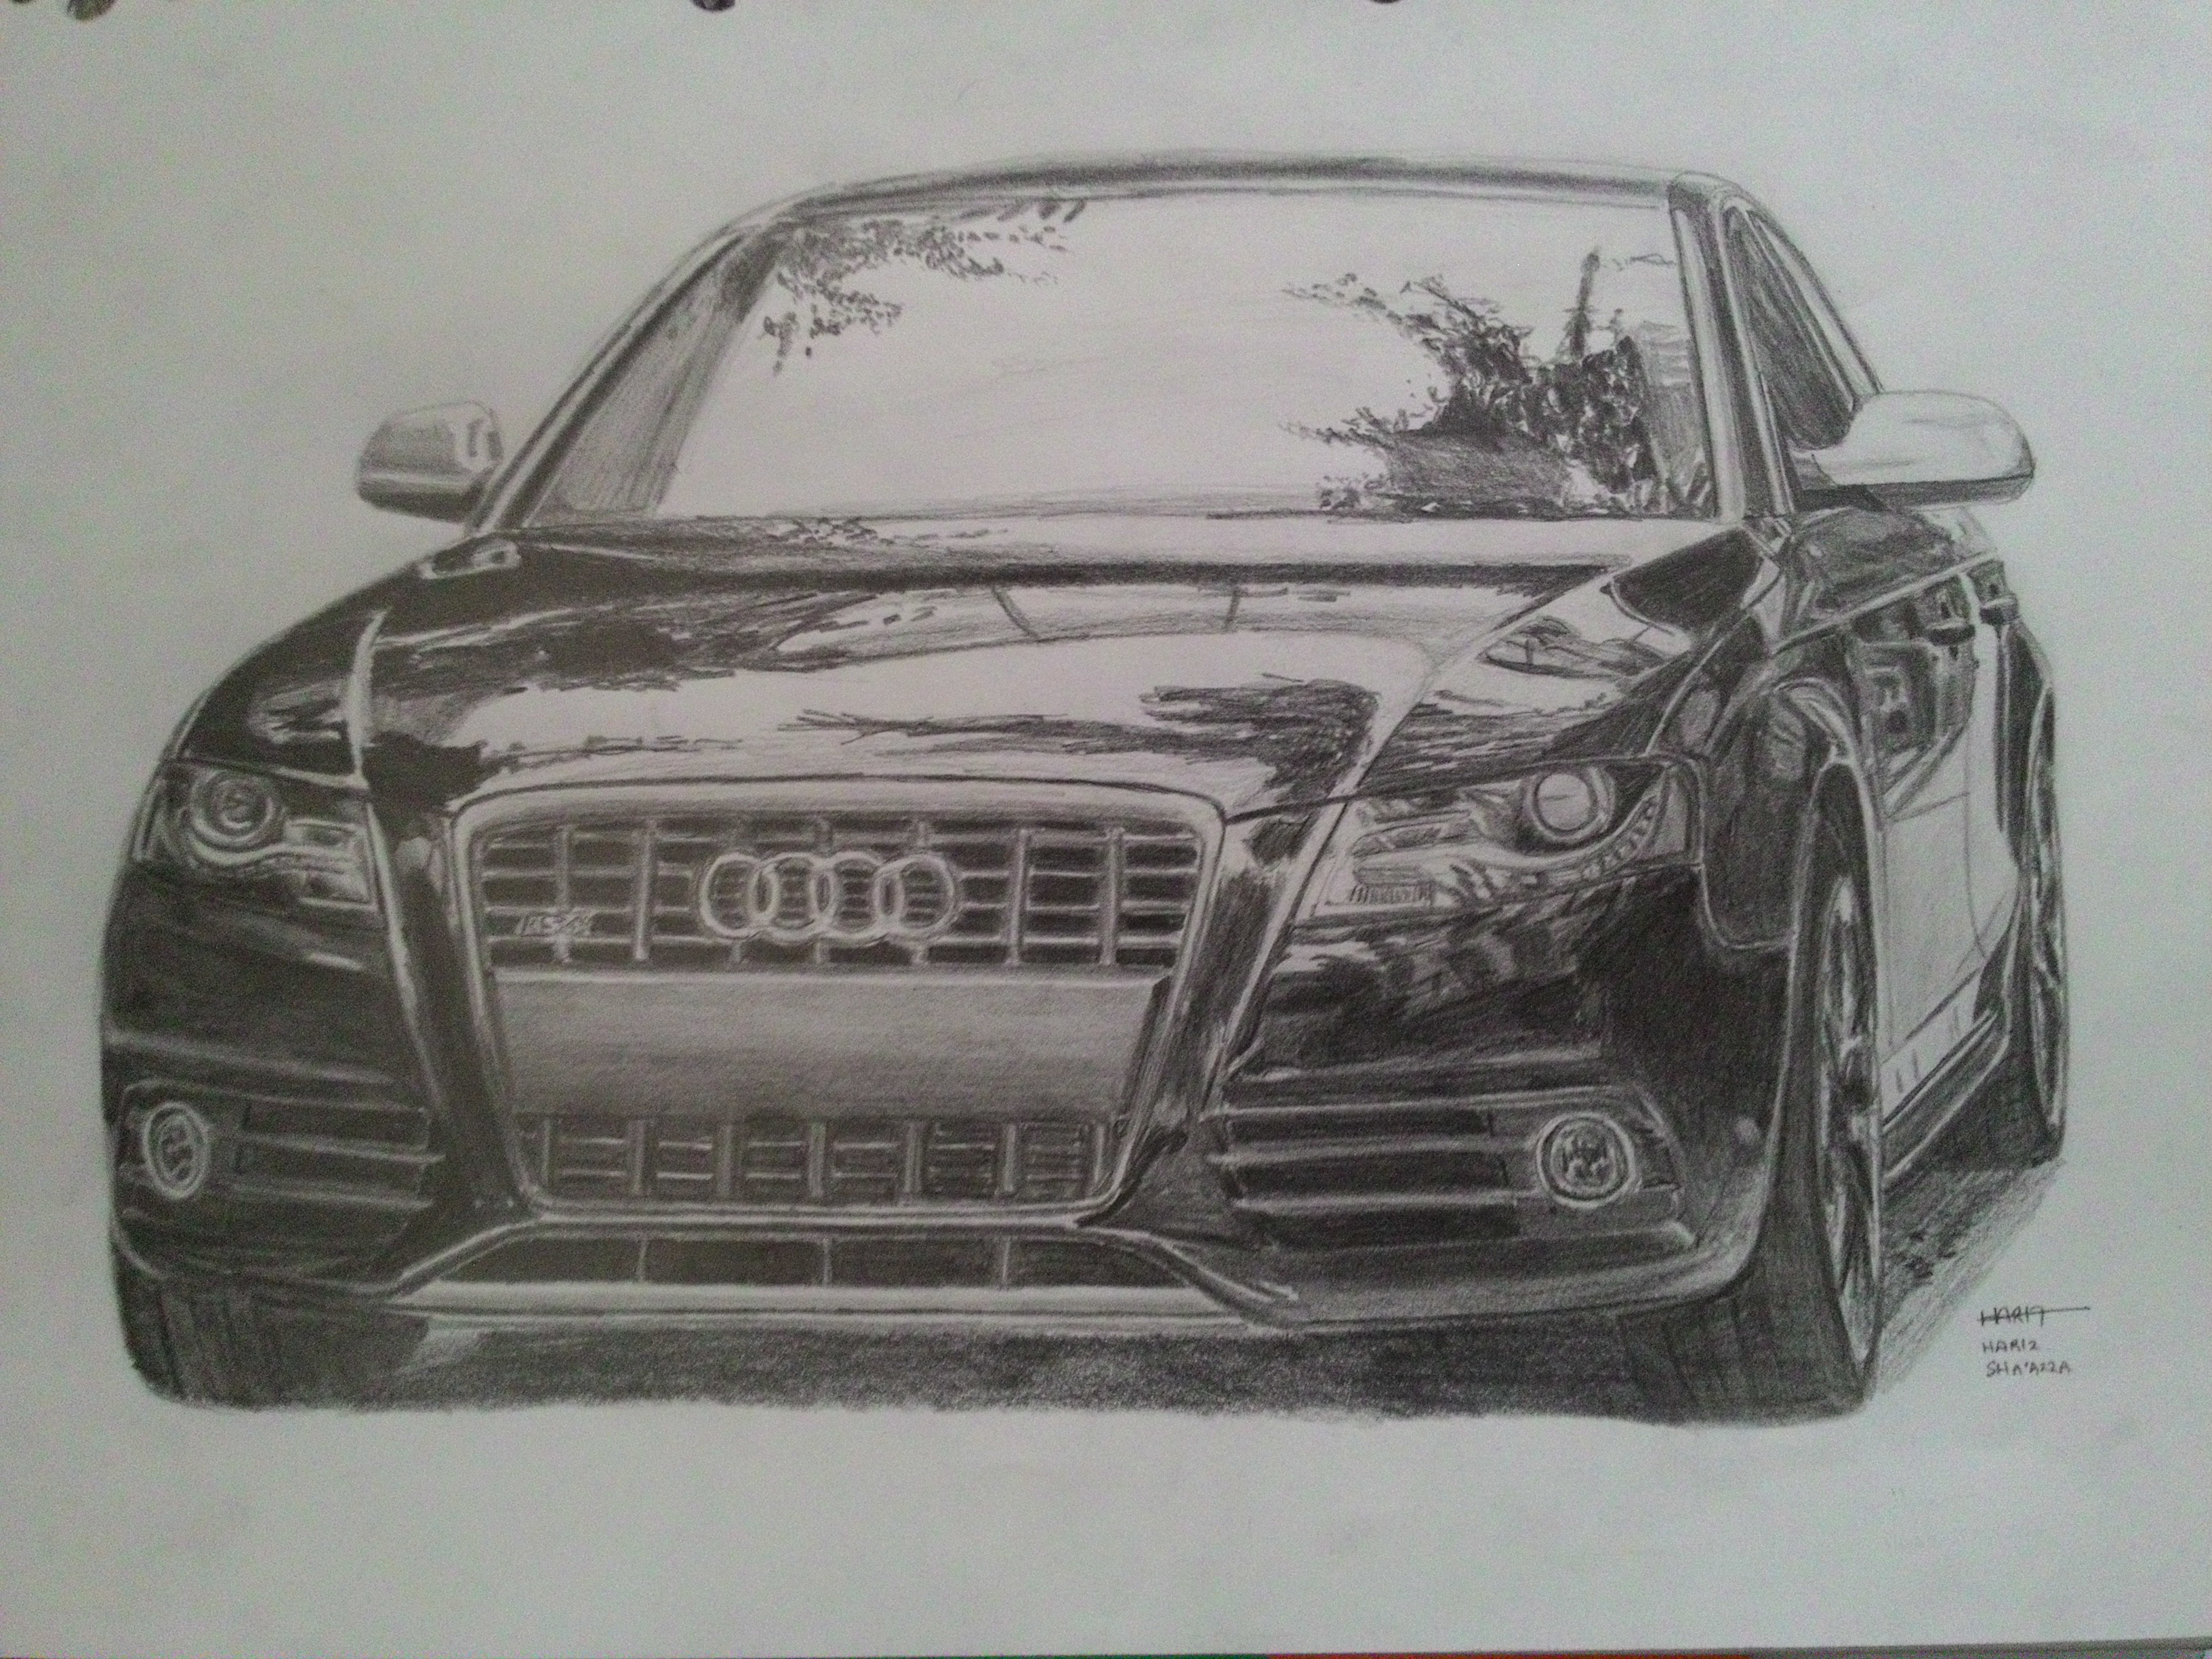 Audi S Drawing - Audi car drawing